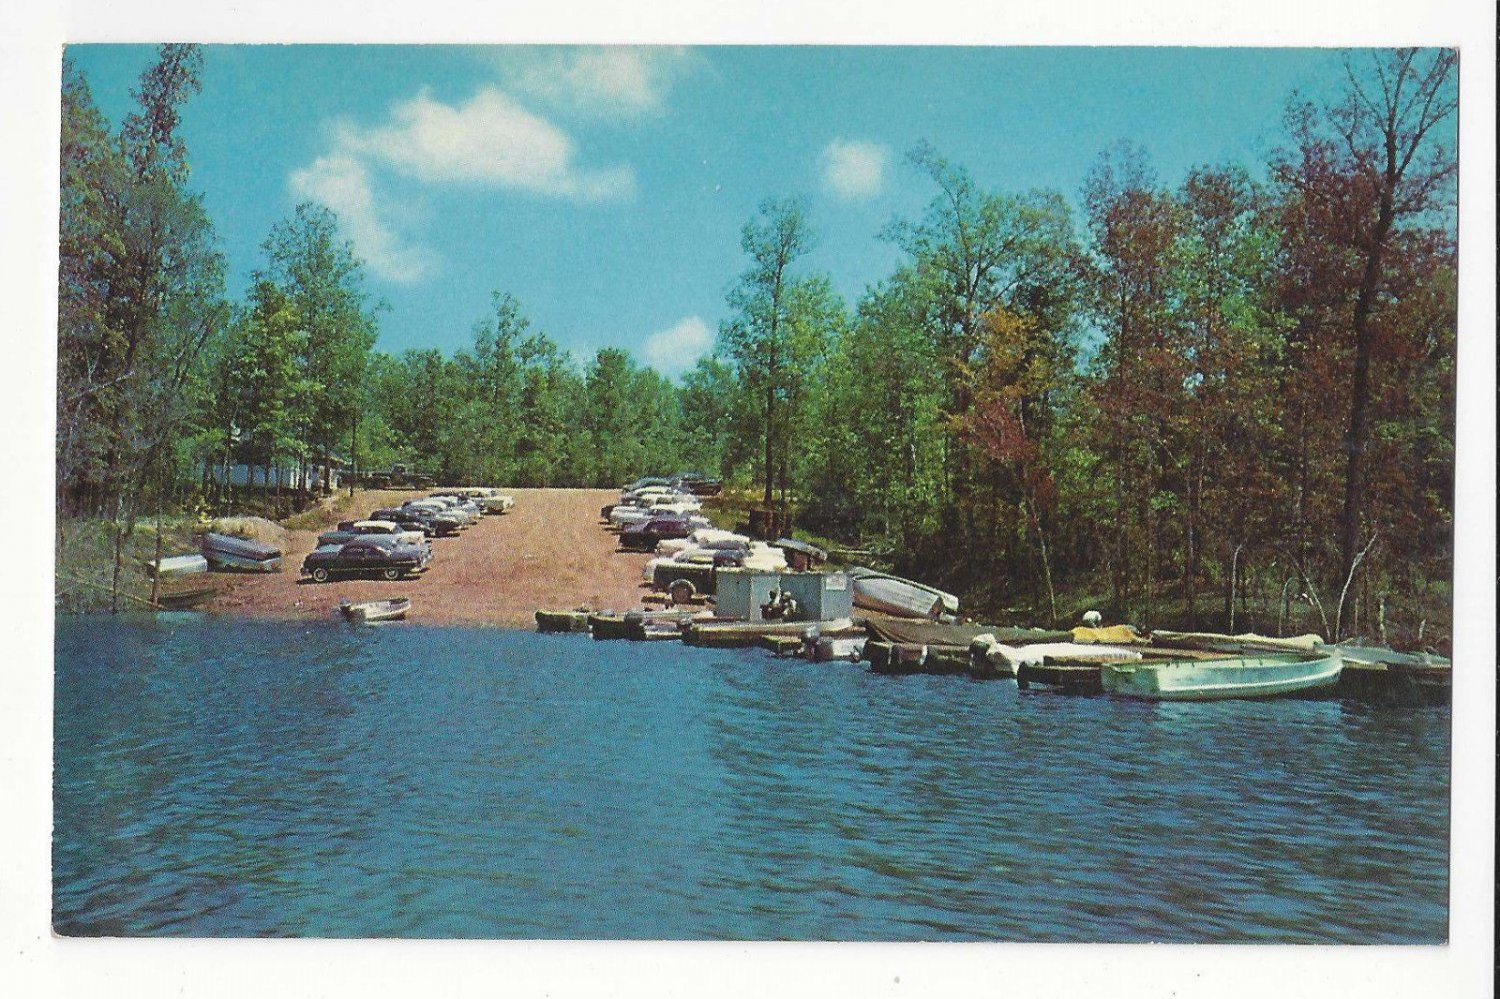 MS Grenada Lake Mississippi Boat Launching Ramp Hugh White State Park Vintage Postcard